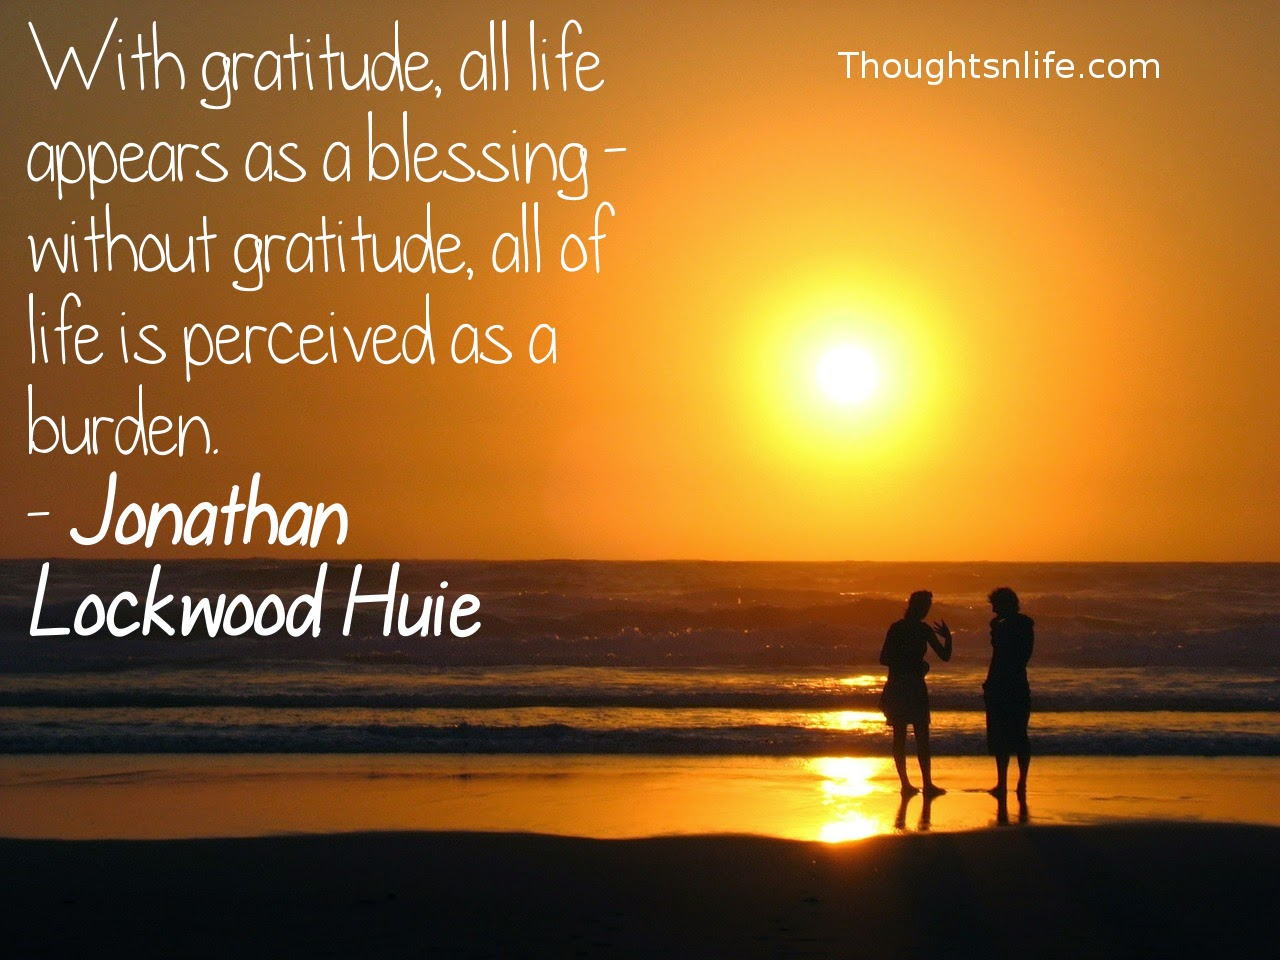 Thoughtsnlife.com: With gratitude, all life appears as a blessing - without gratitude, all of life is perceived as a burden. - Jonathan Lockwood Huie